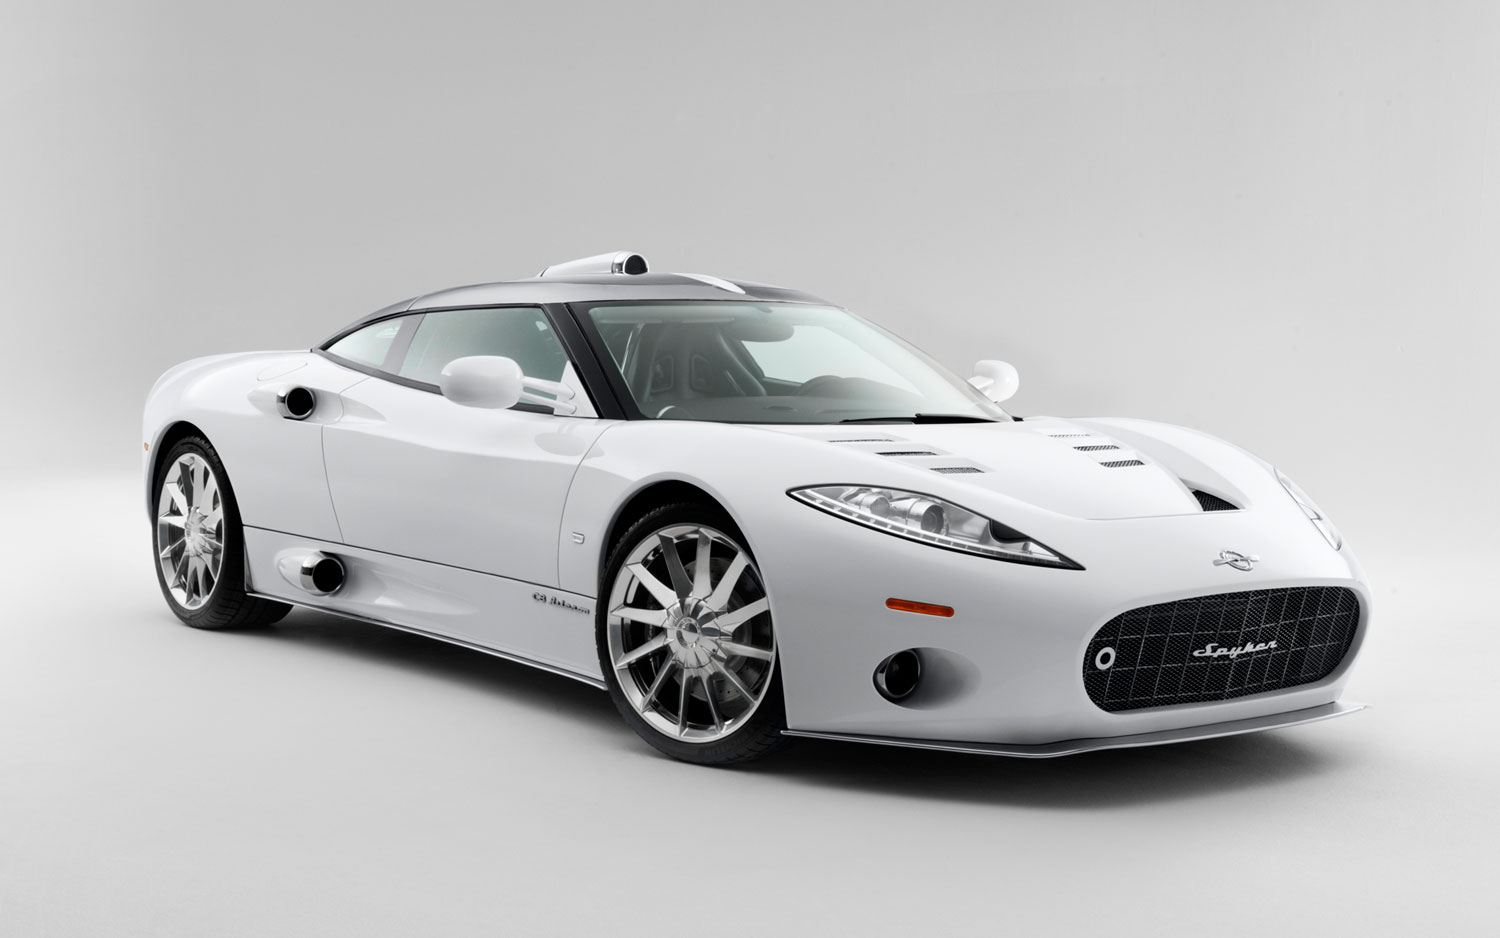 2017 Spyker C8 Spyder photo - 1